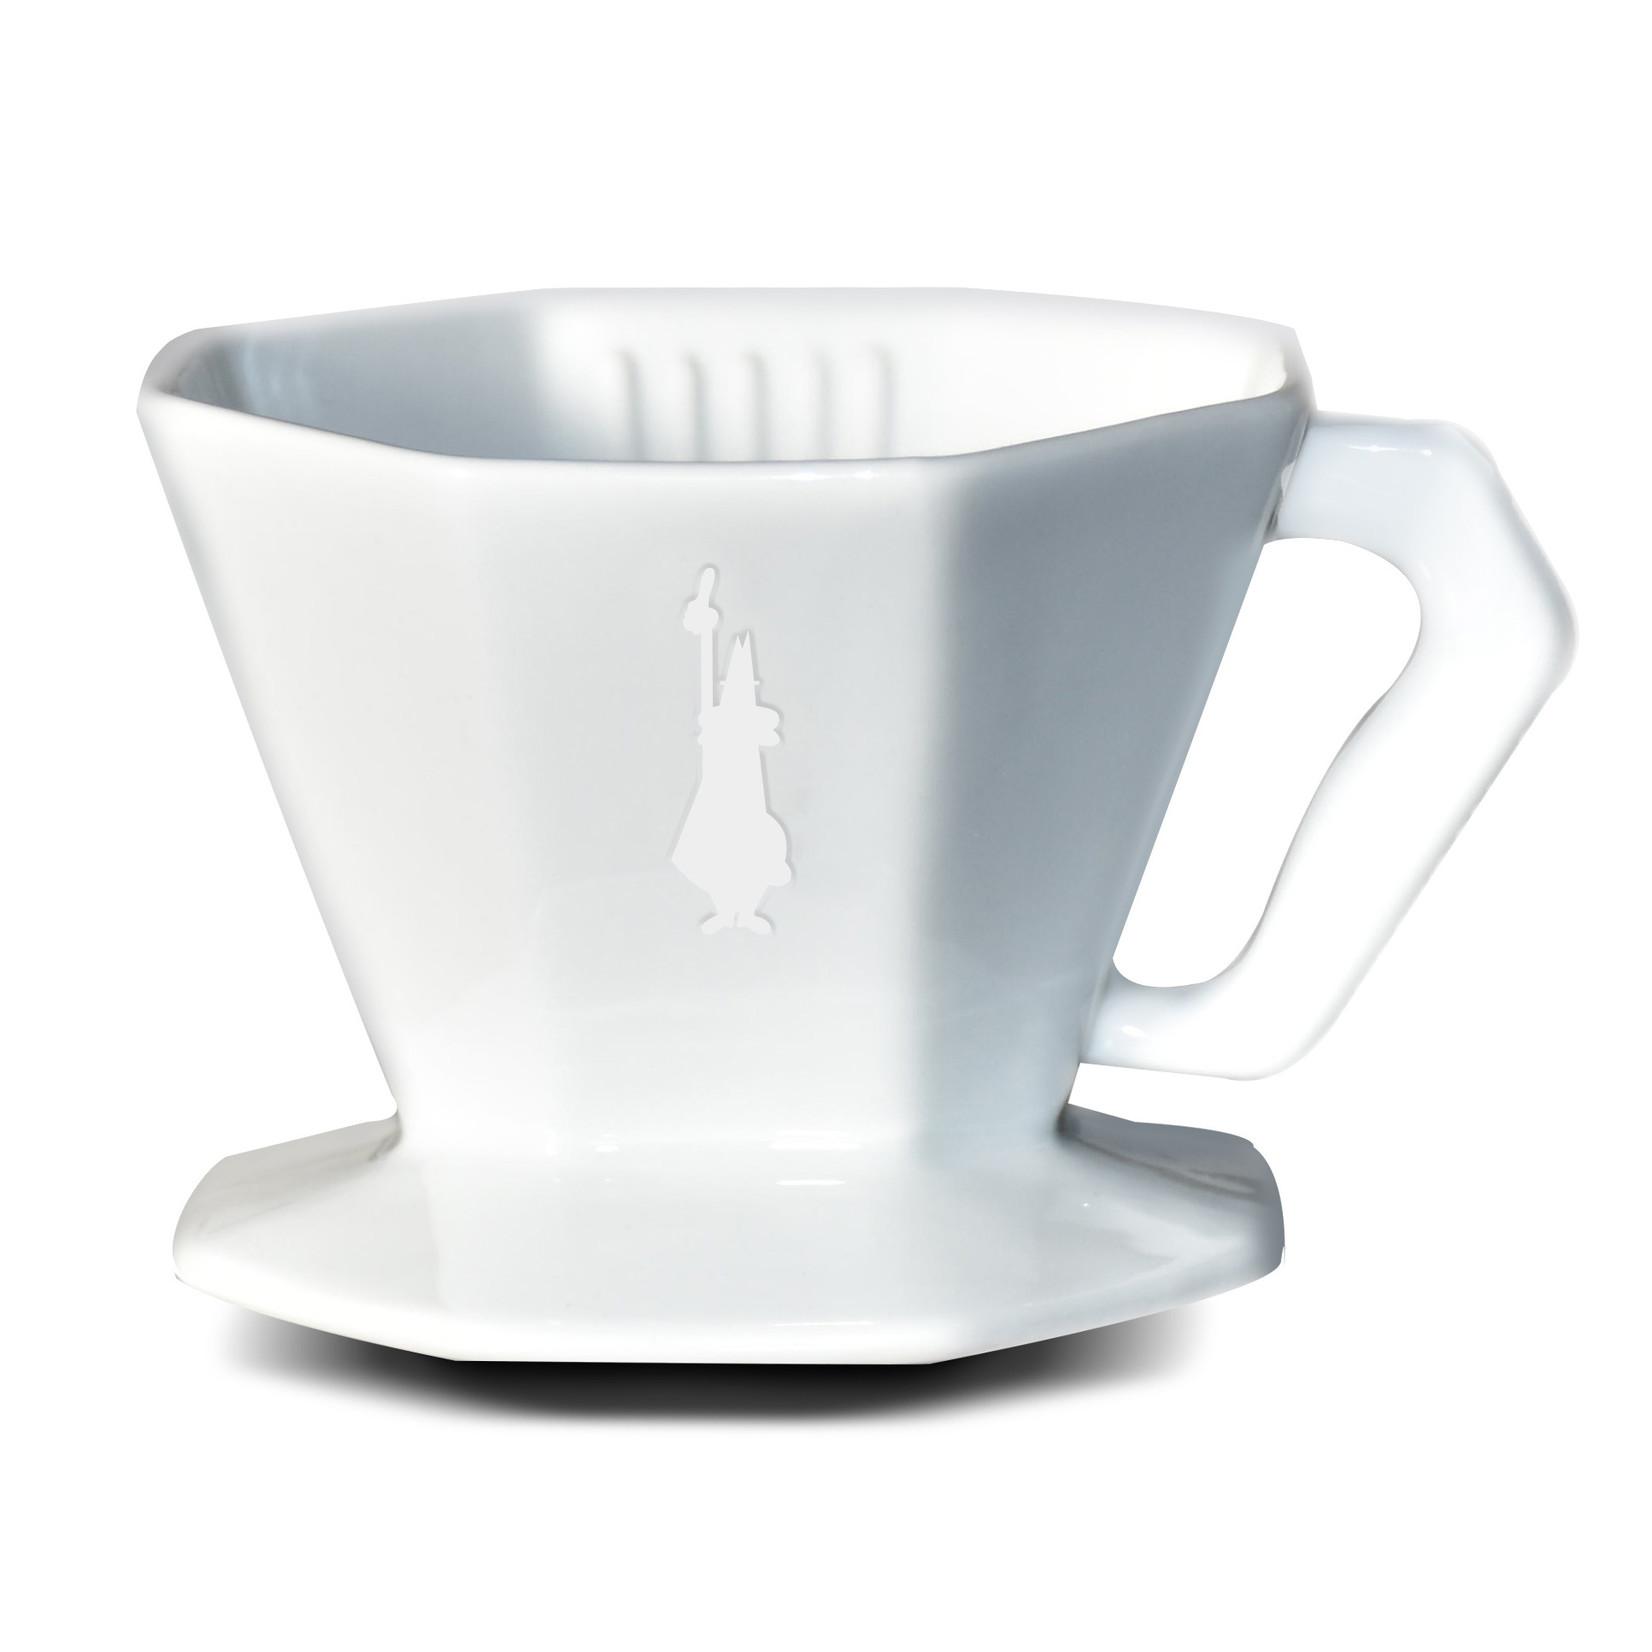 Bialetti Bialetti Pour Over cafetiere keramisch 4 kops